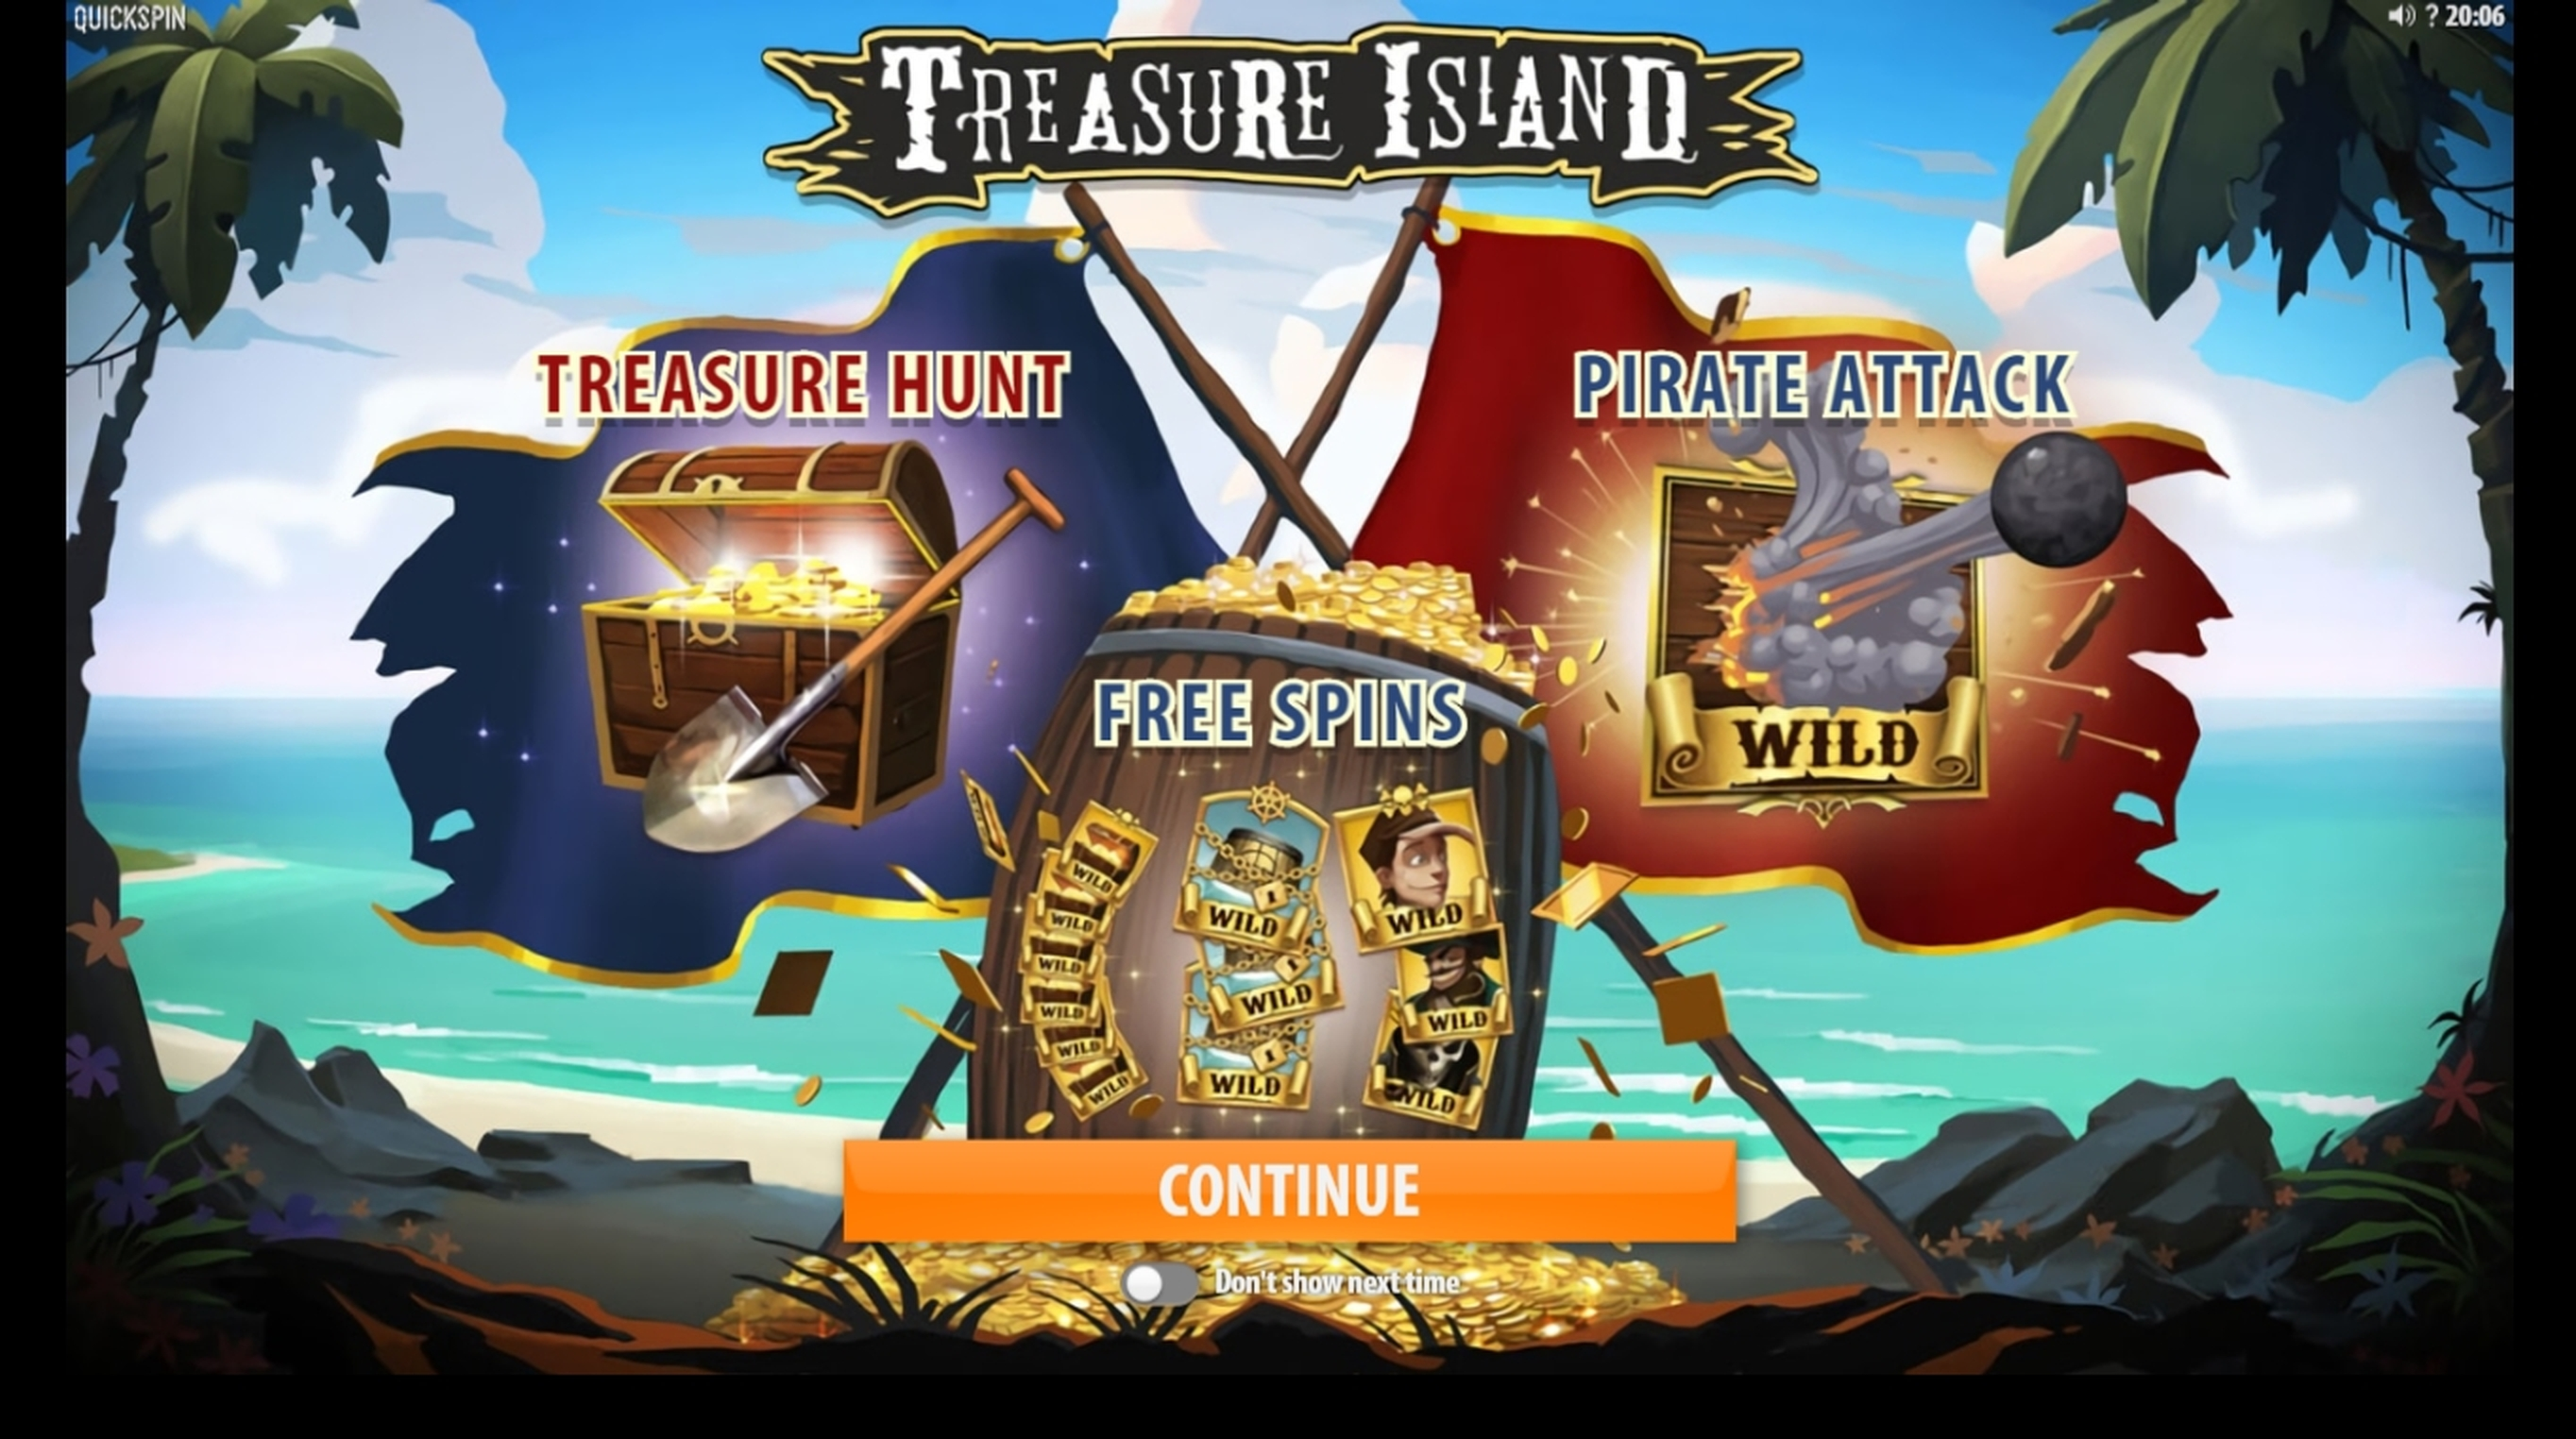 Play Treasure Island (CQ9Gaming) Free Casino Slot Game by CQ9Gaming